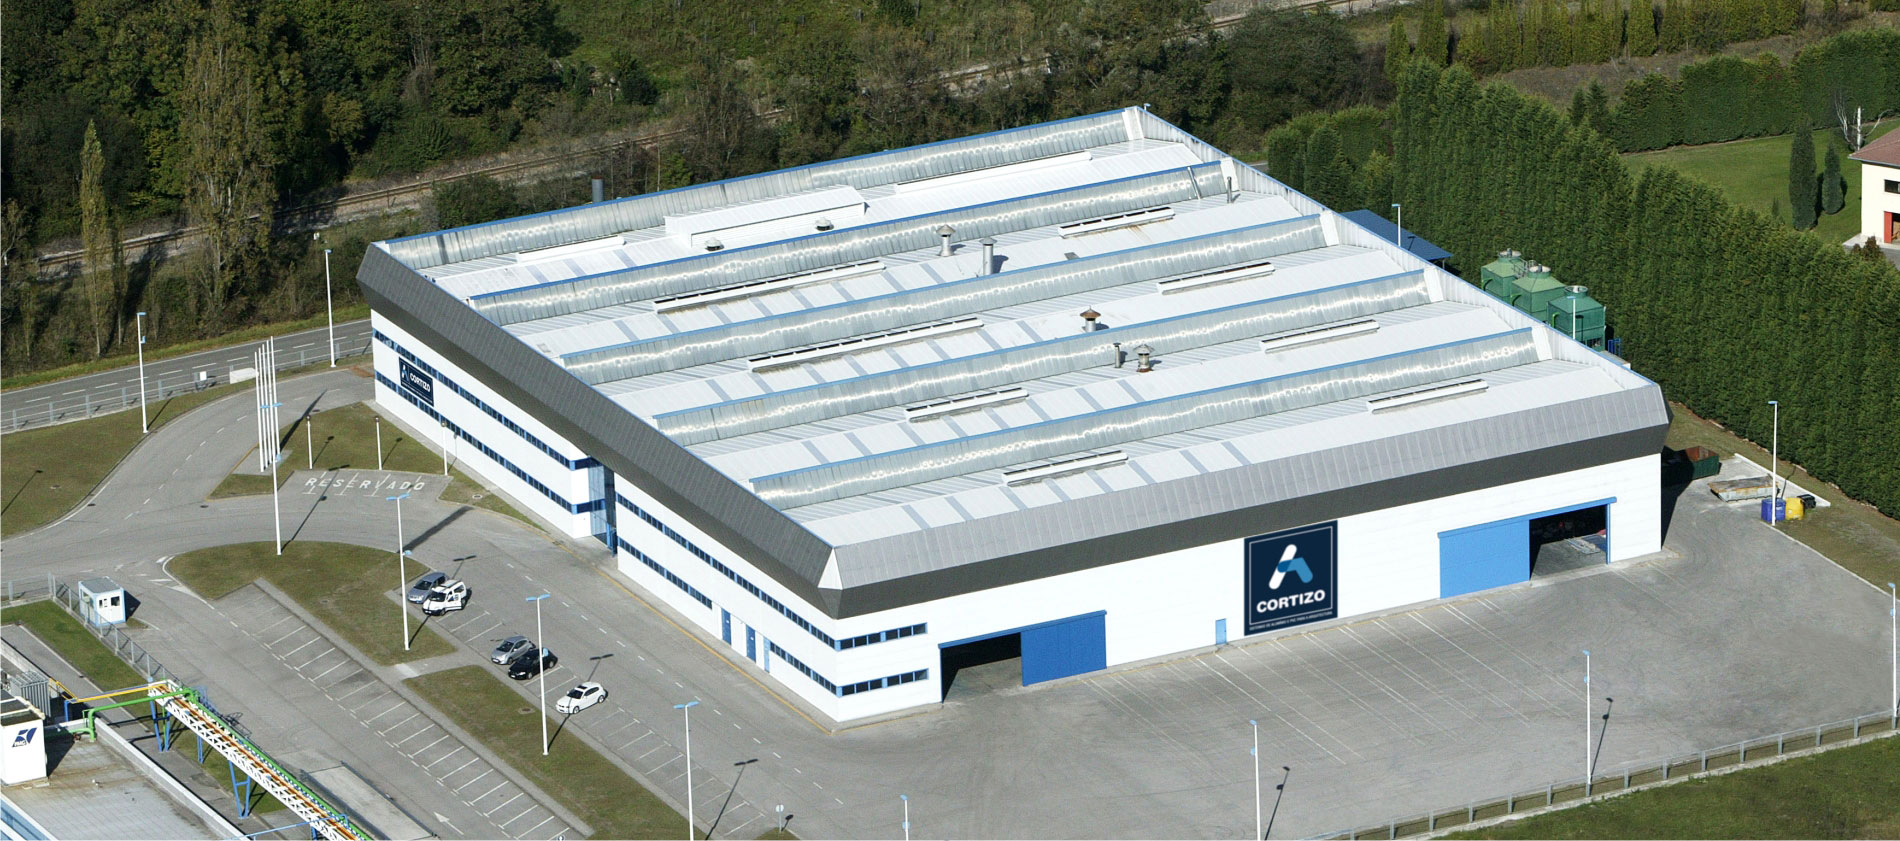 ASTURIAS FOUNDRY PLANT - MIERES (SPAIN)